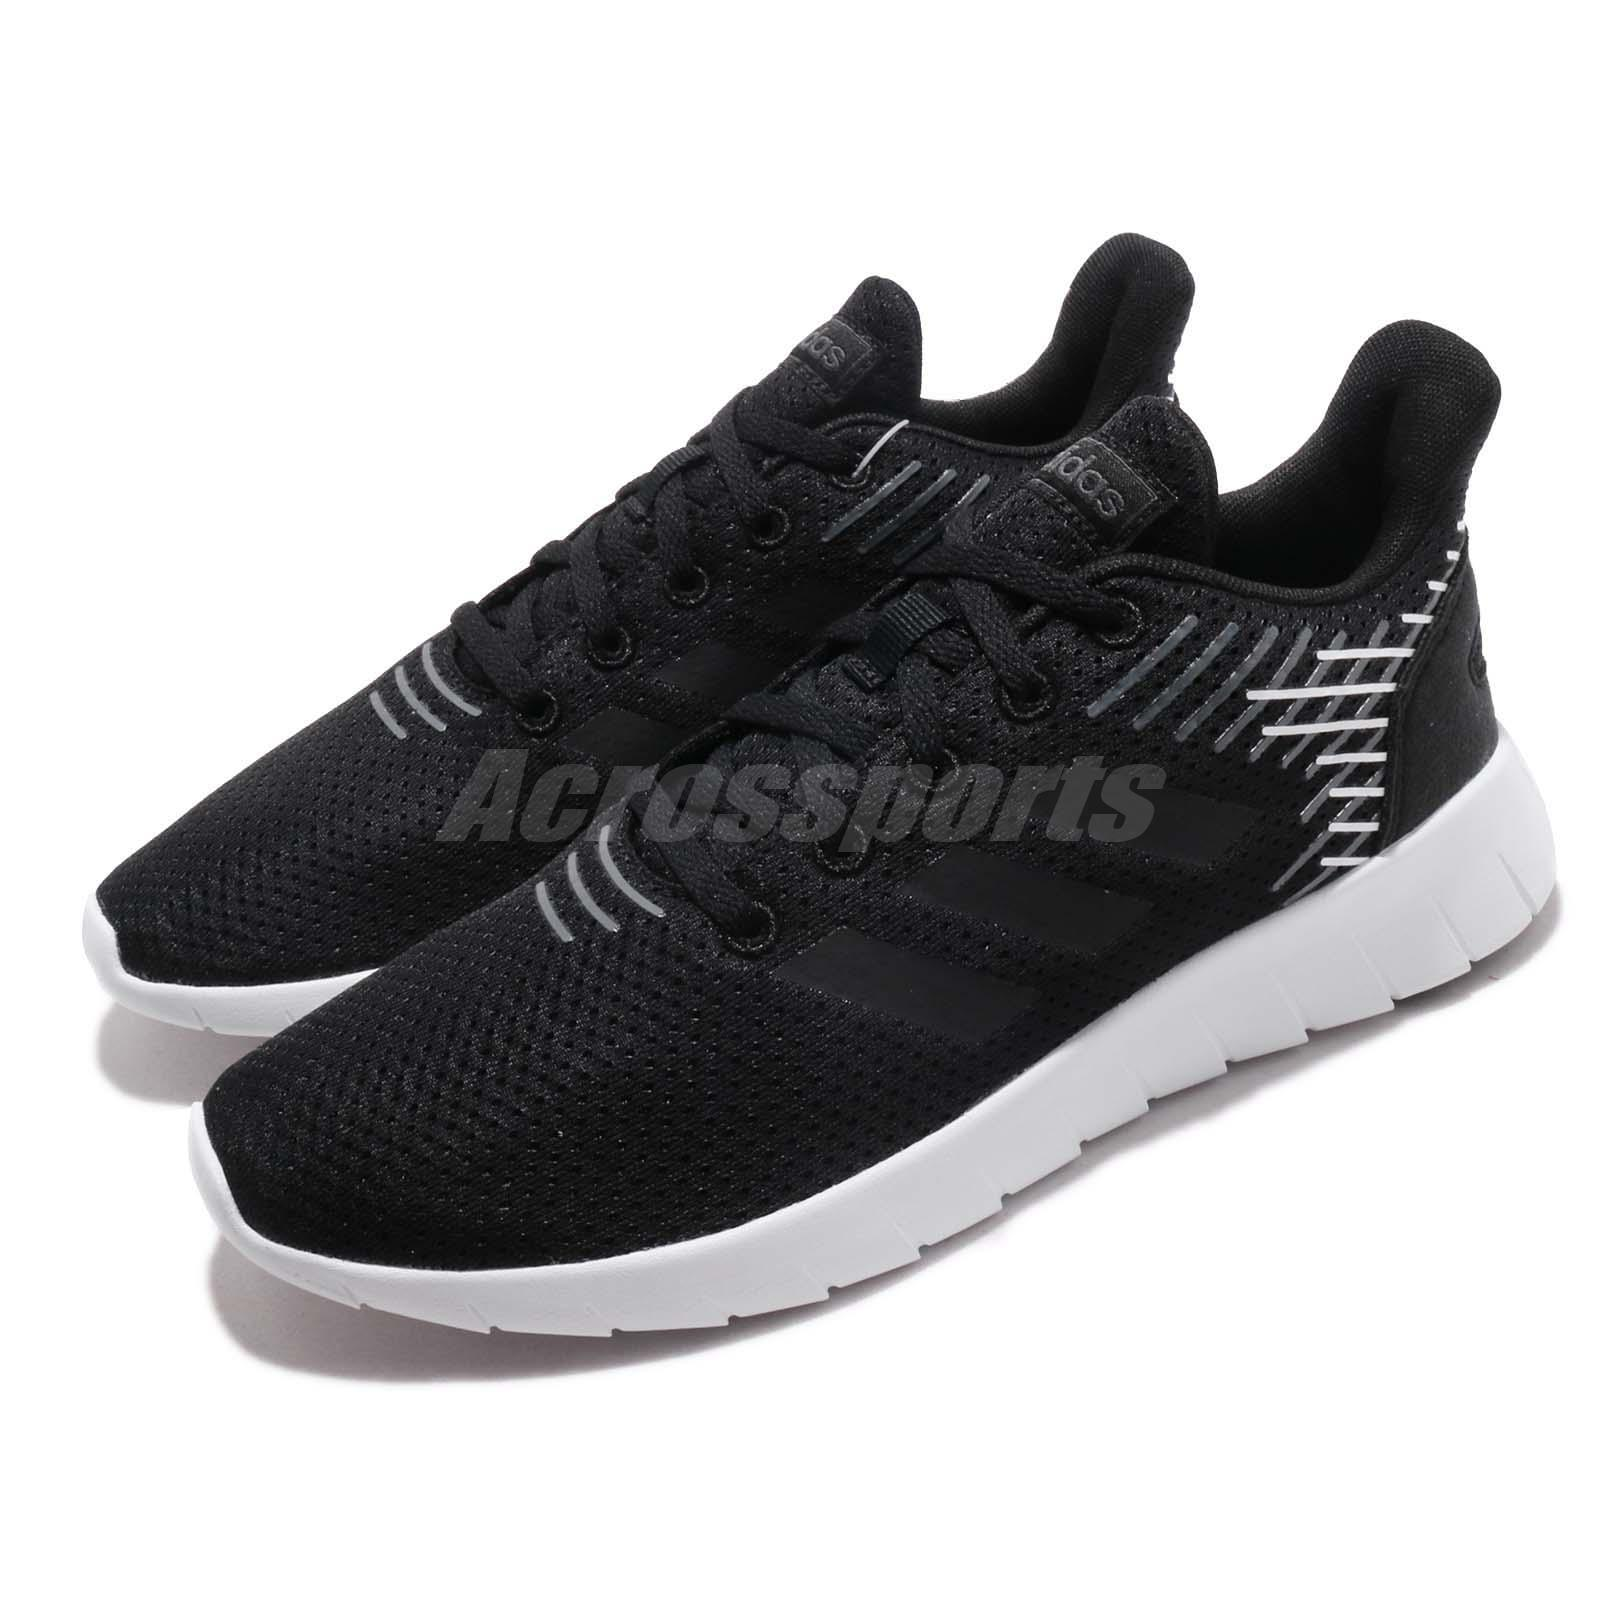 Details about adidas Asweerun Black Grey White Women Running Training Shoes Sneakers F36339